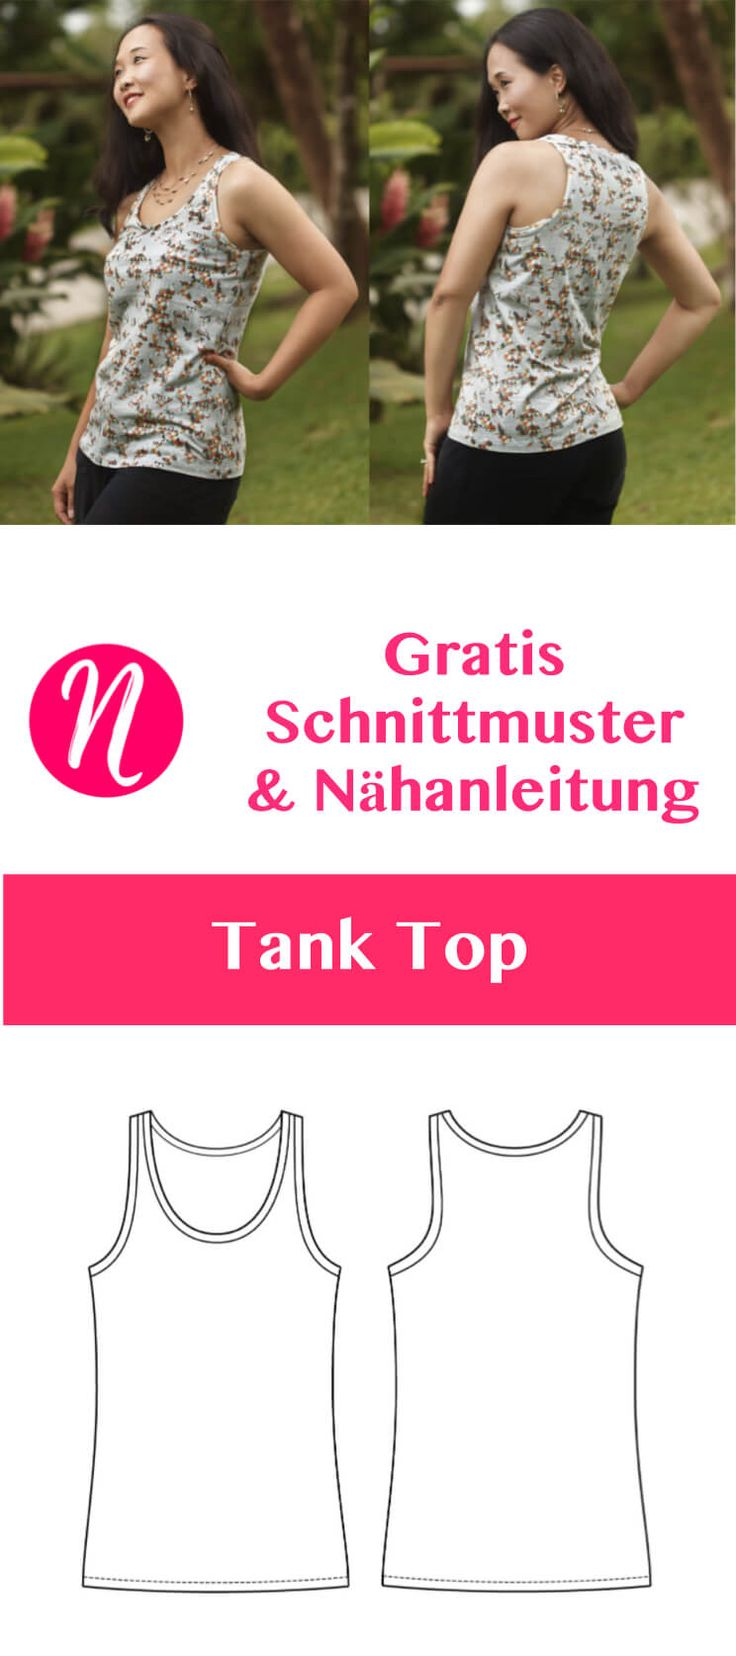 Best 1000+ Oberteile nähen images on Pinterest | Big sizes, Blouses ...